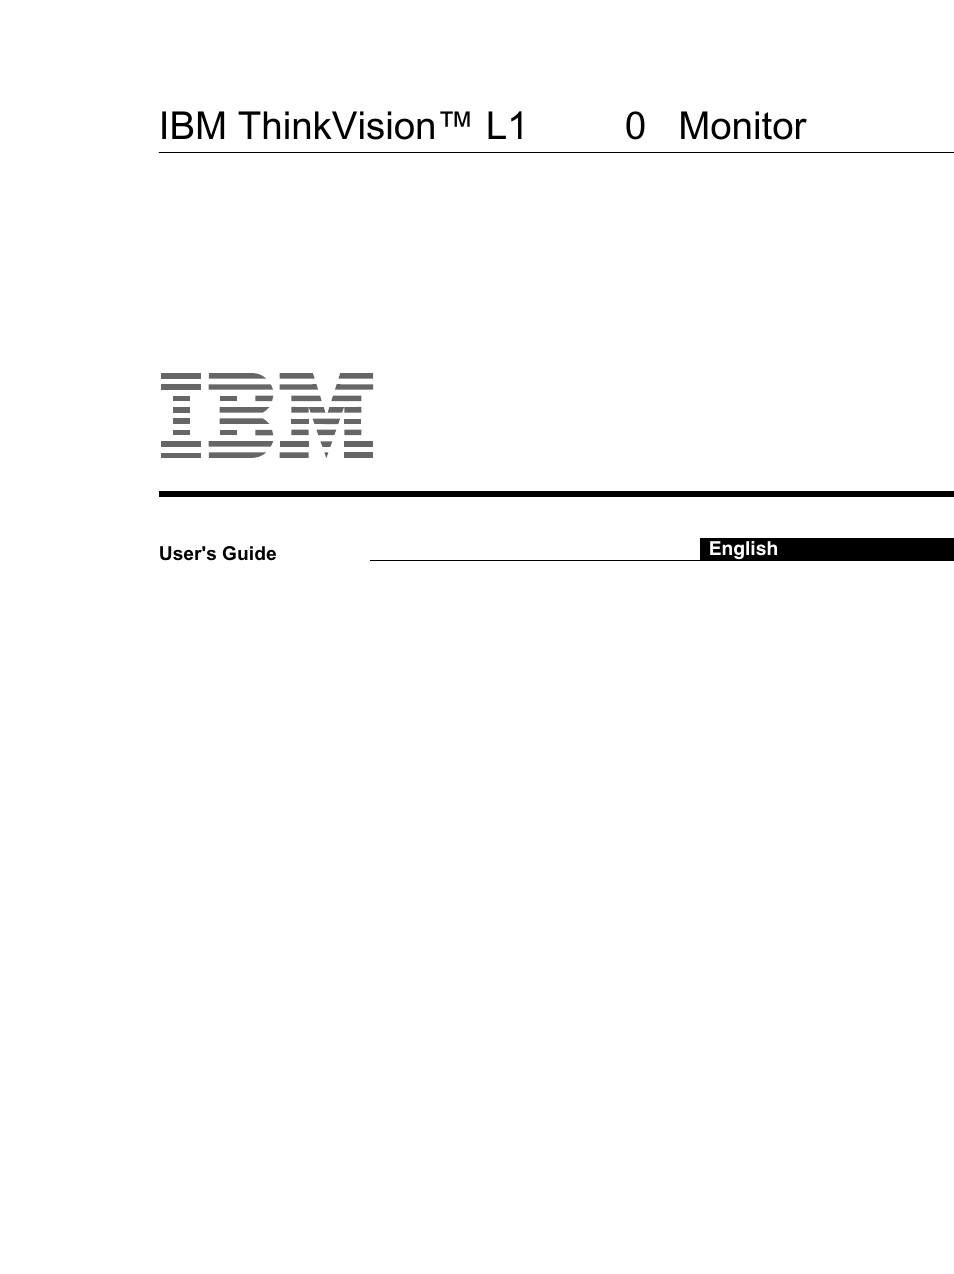 ibm thinkvision monitor l150 user manual 35 pages also for rh manualsdir com ibm thinkvision monitor service manual 2005 IBM ThinkVision Monitor